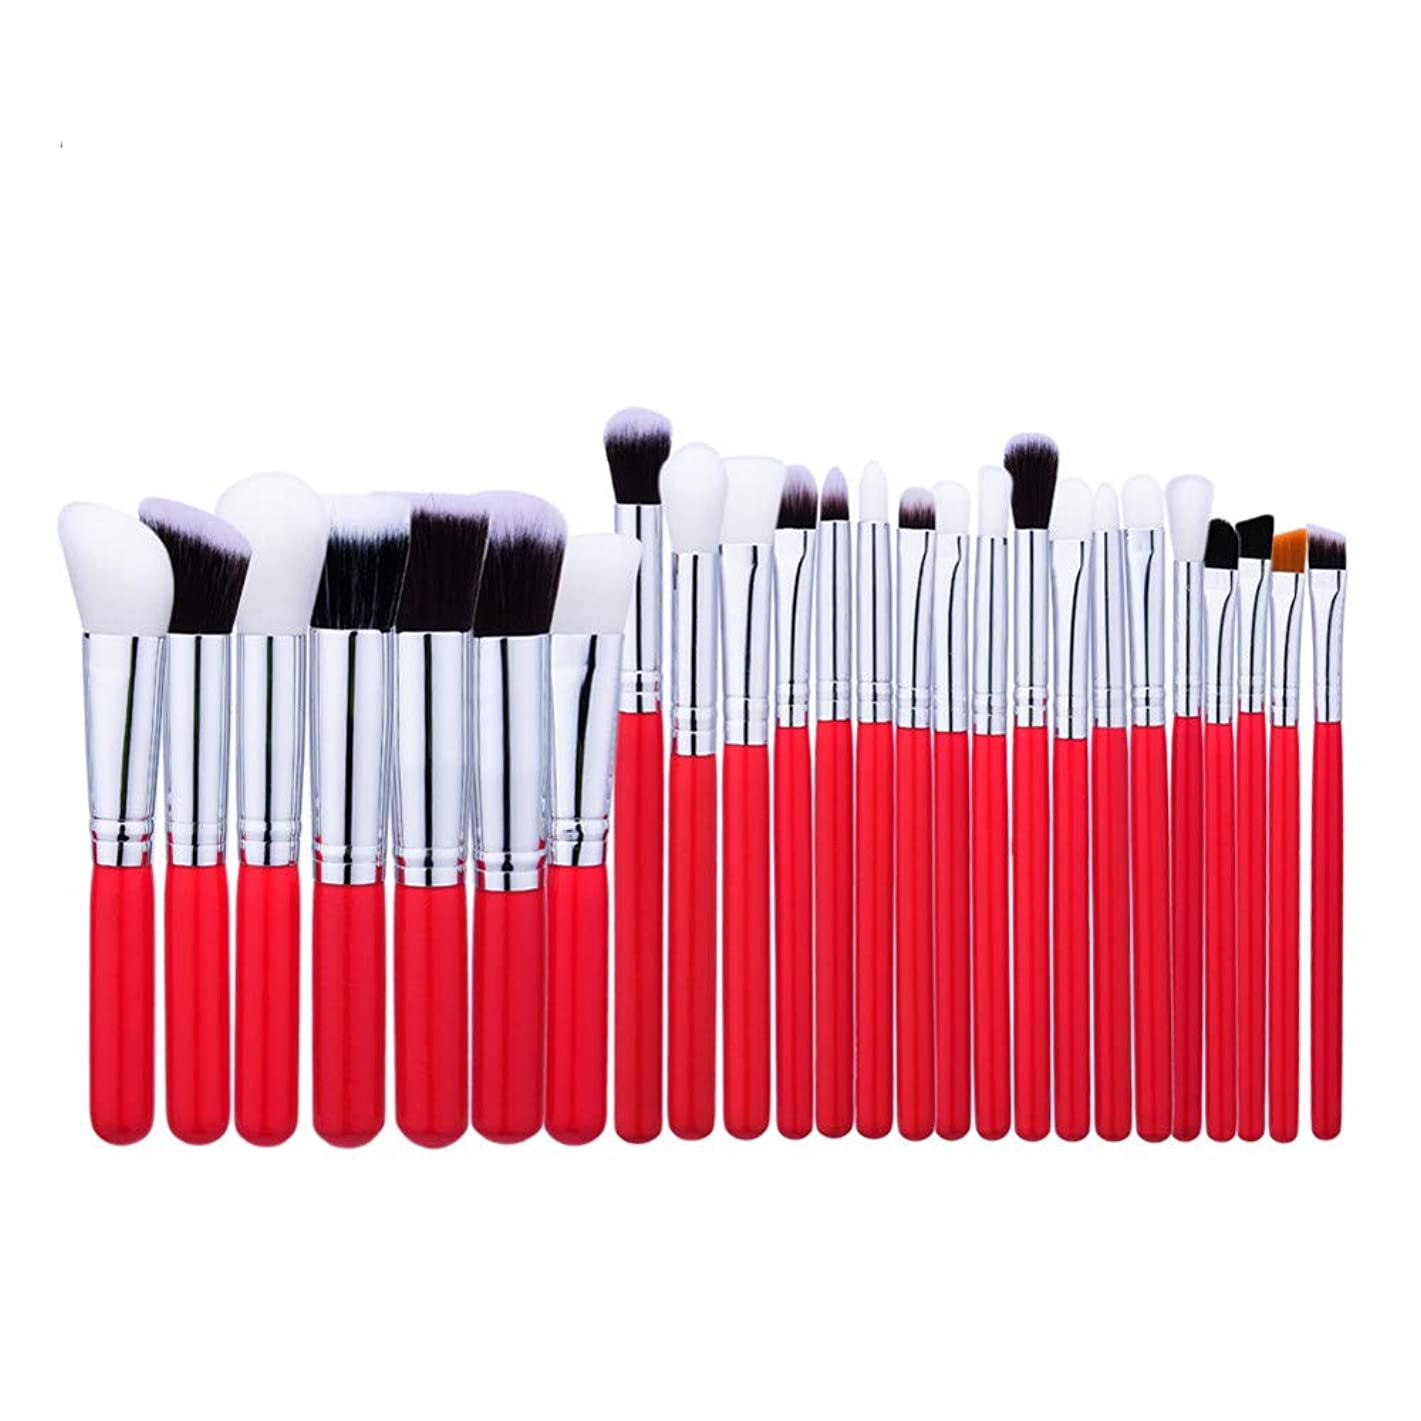 Start 25pcs/Sets Makeup Brush Set for Eye Shadow Foundation Eyebrow Lip Sapphire Wooden Cosmetic Makeup Brush with Bag (Red)